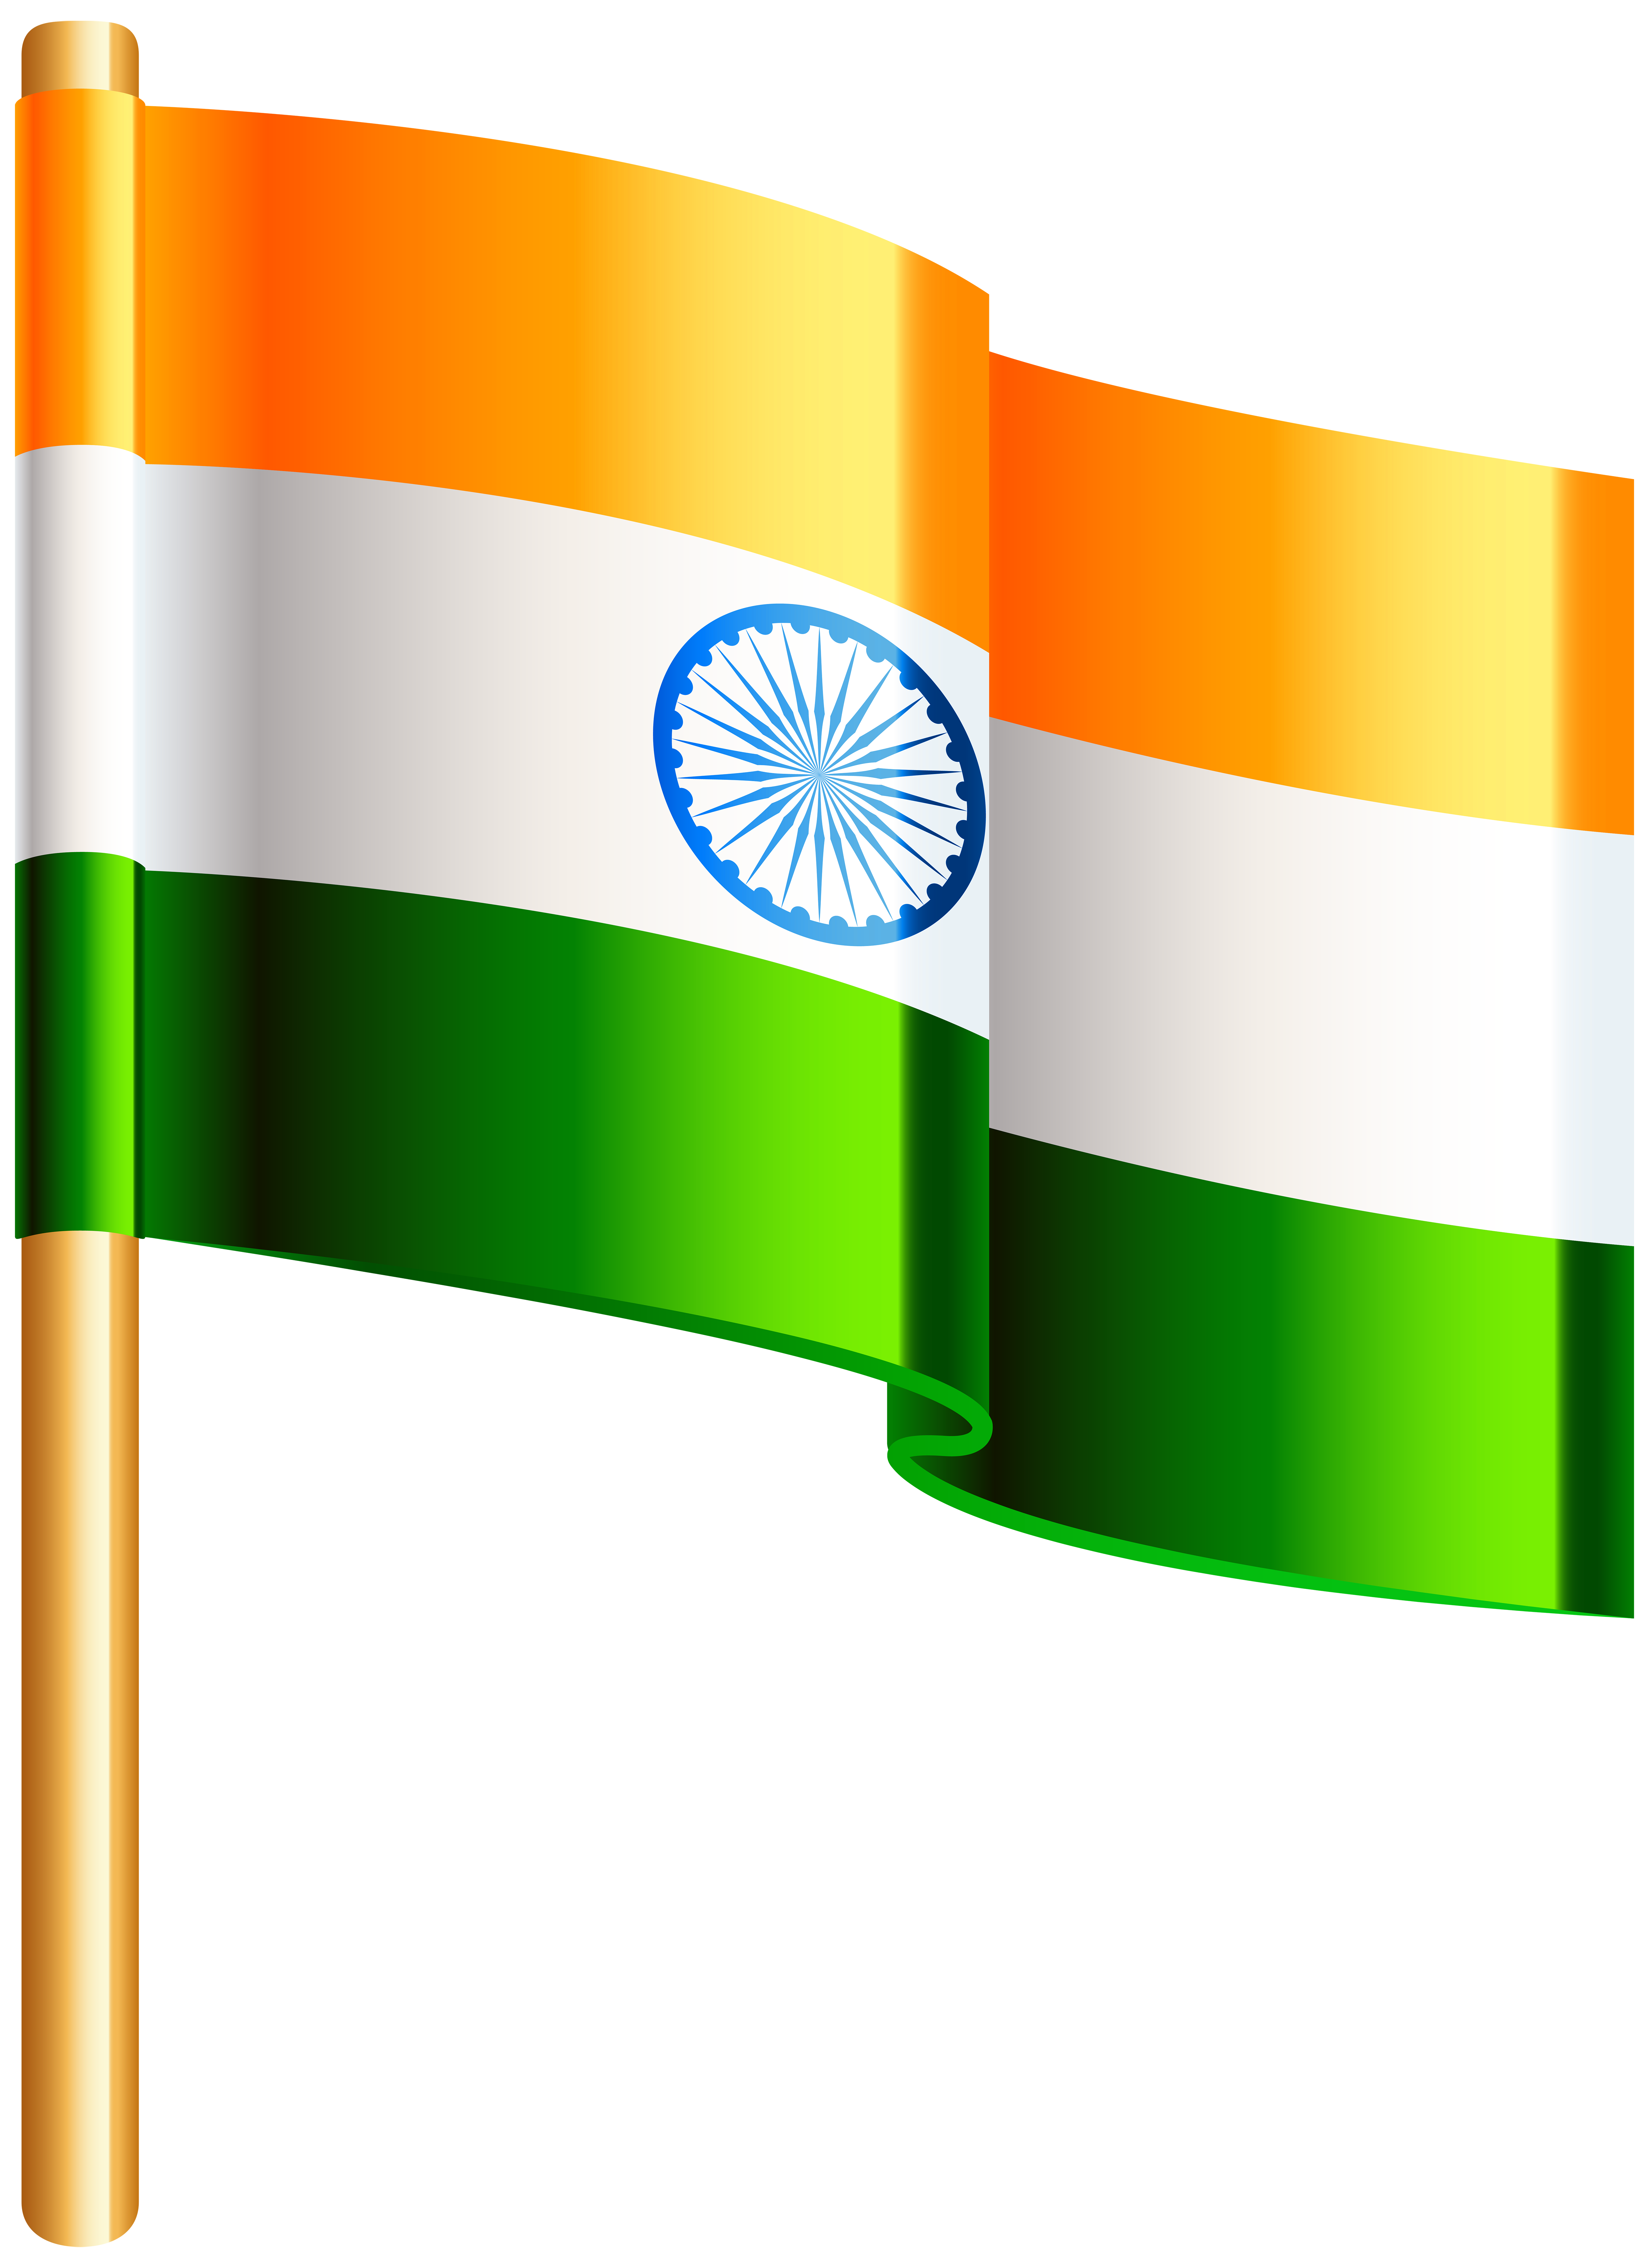 India flag png. Clip art image gallery